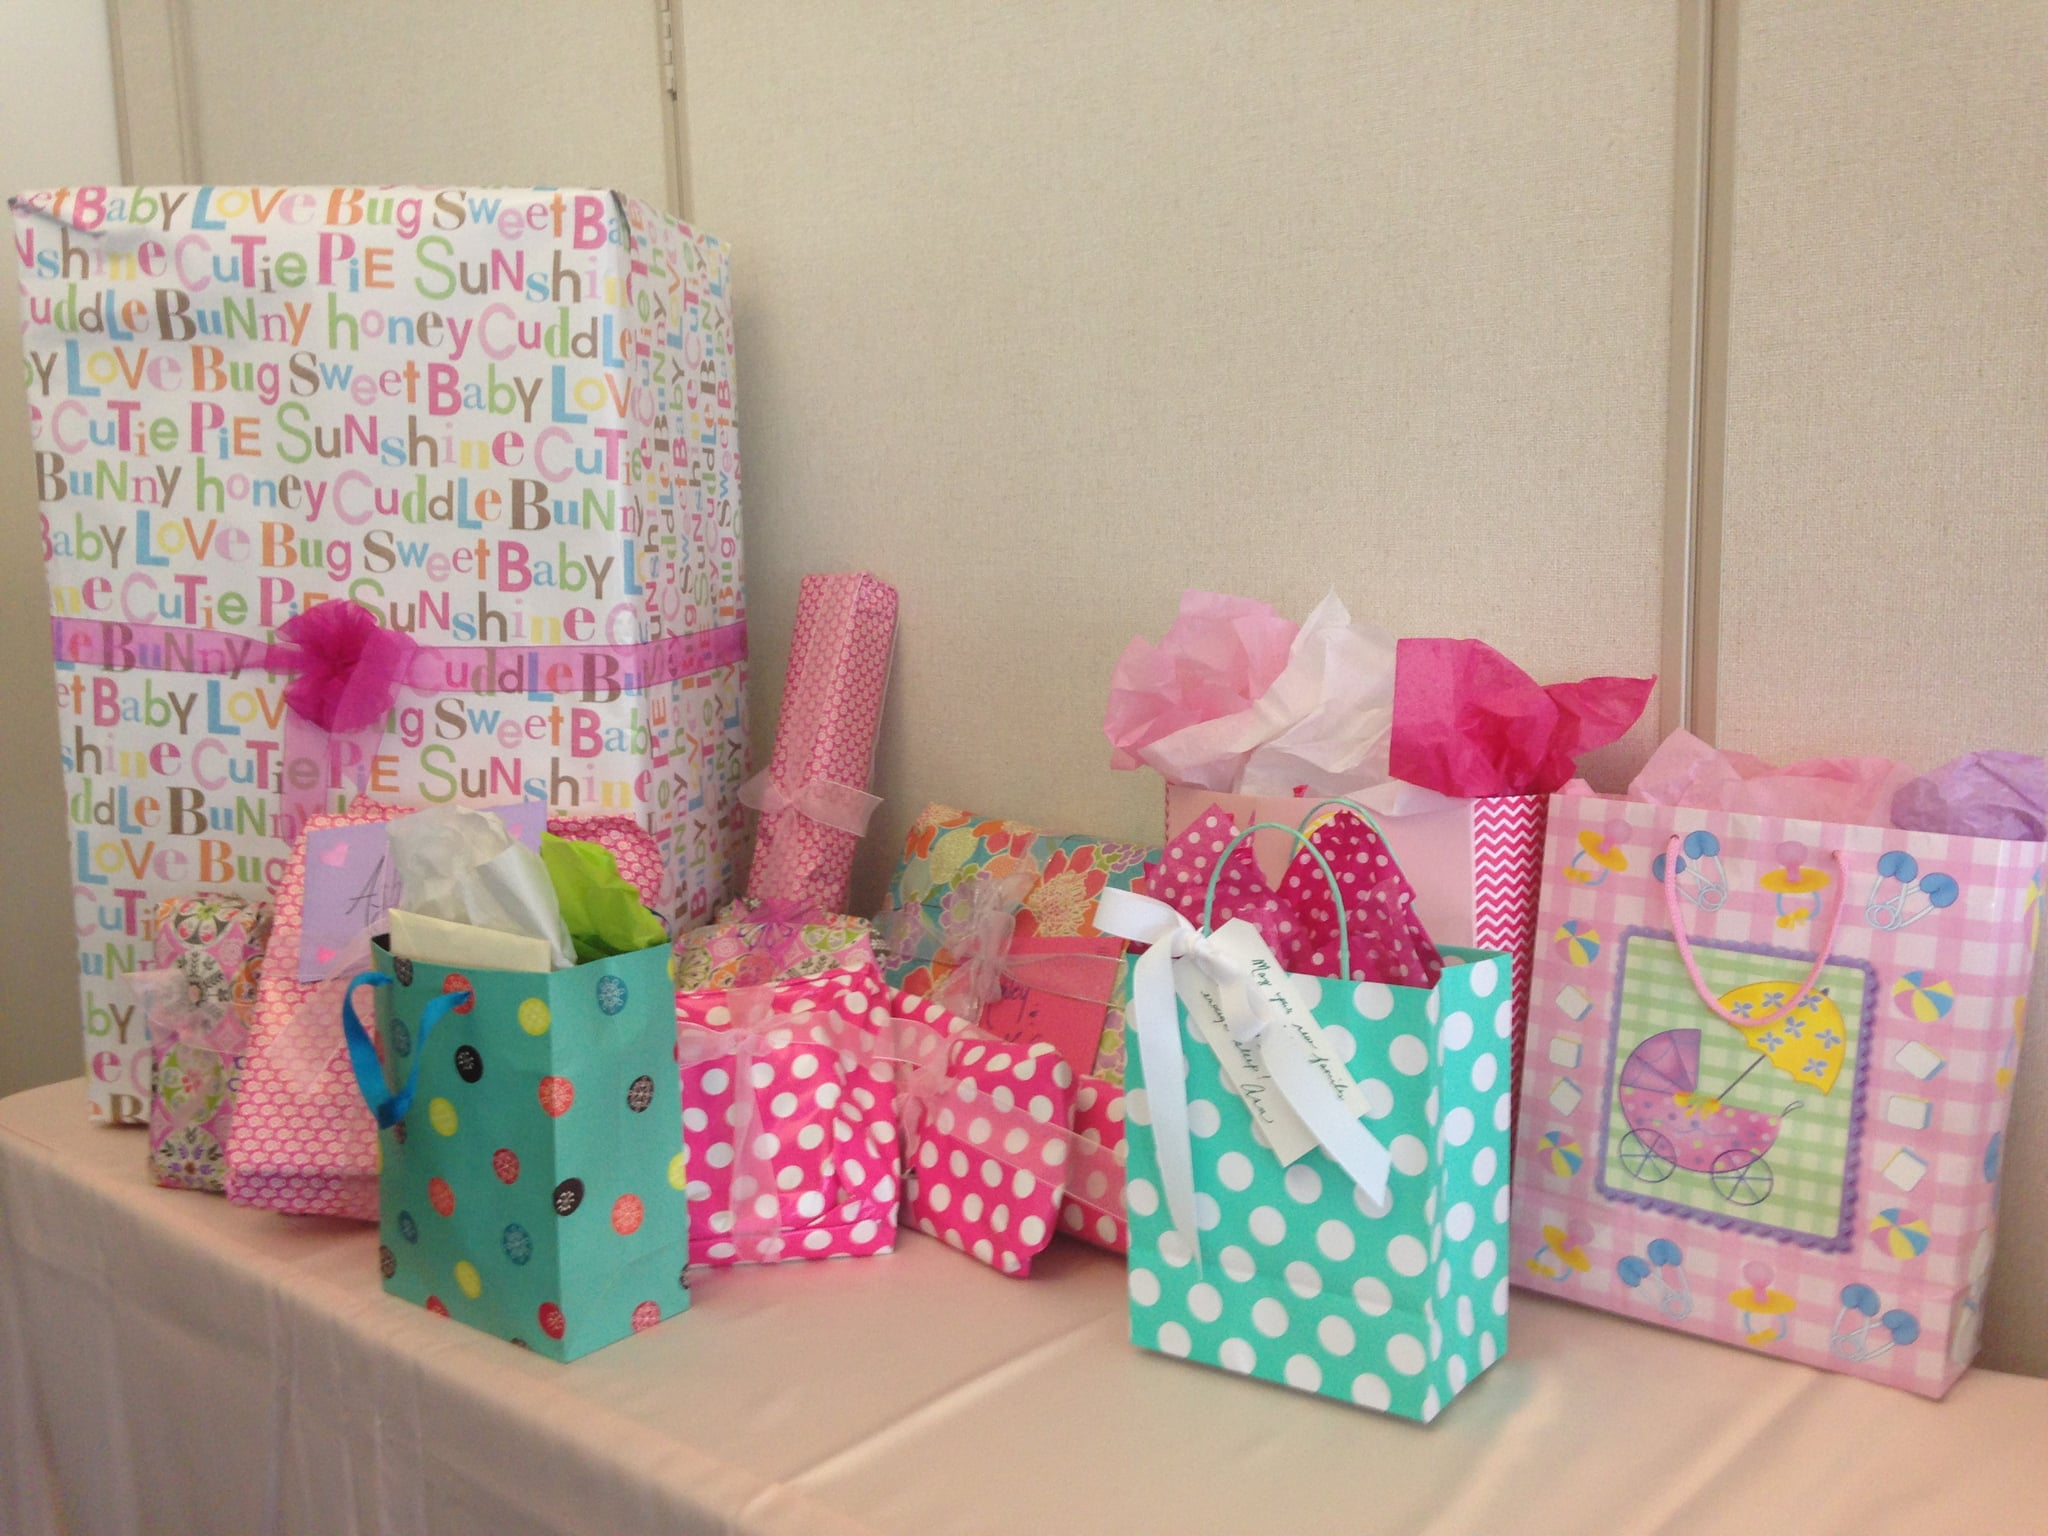 How Much Should You Spend on a Baby Shower Gift? | POPSUGAR Family